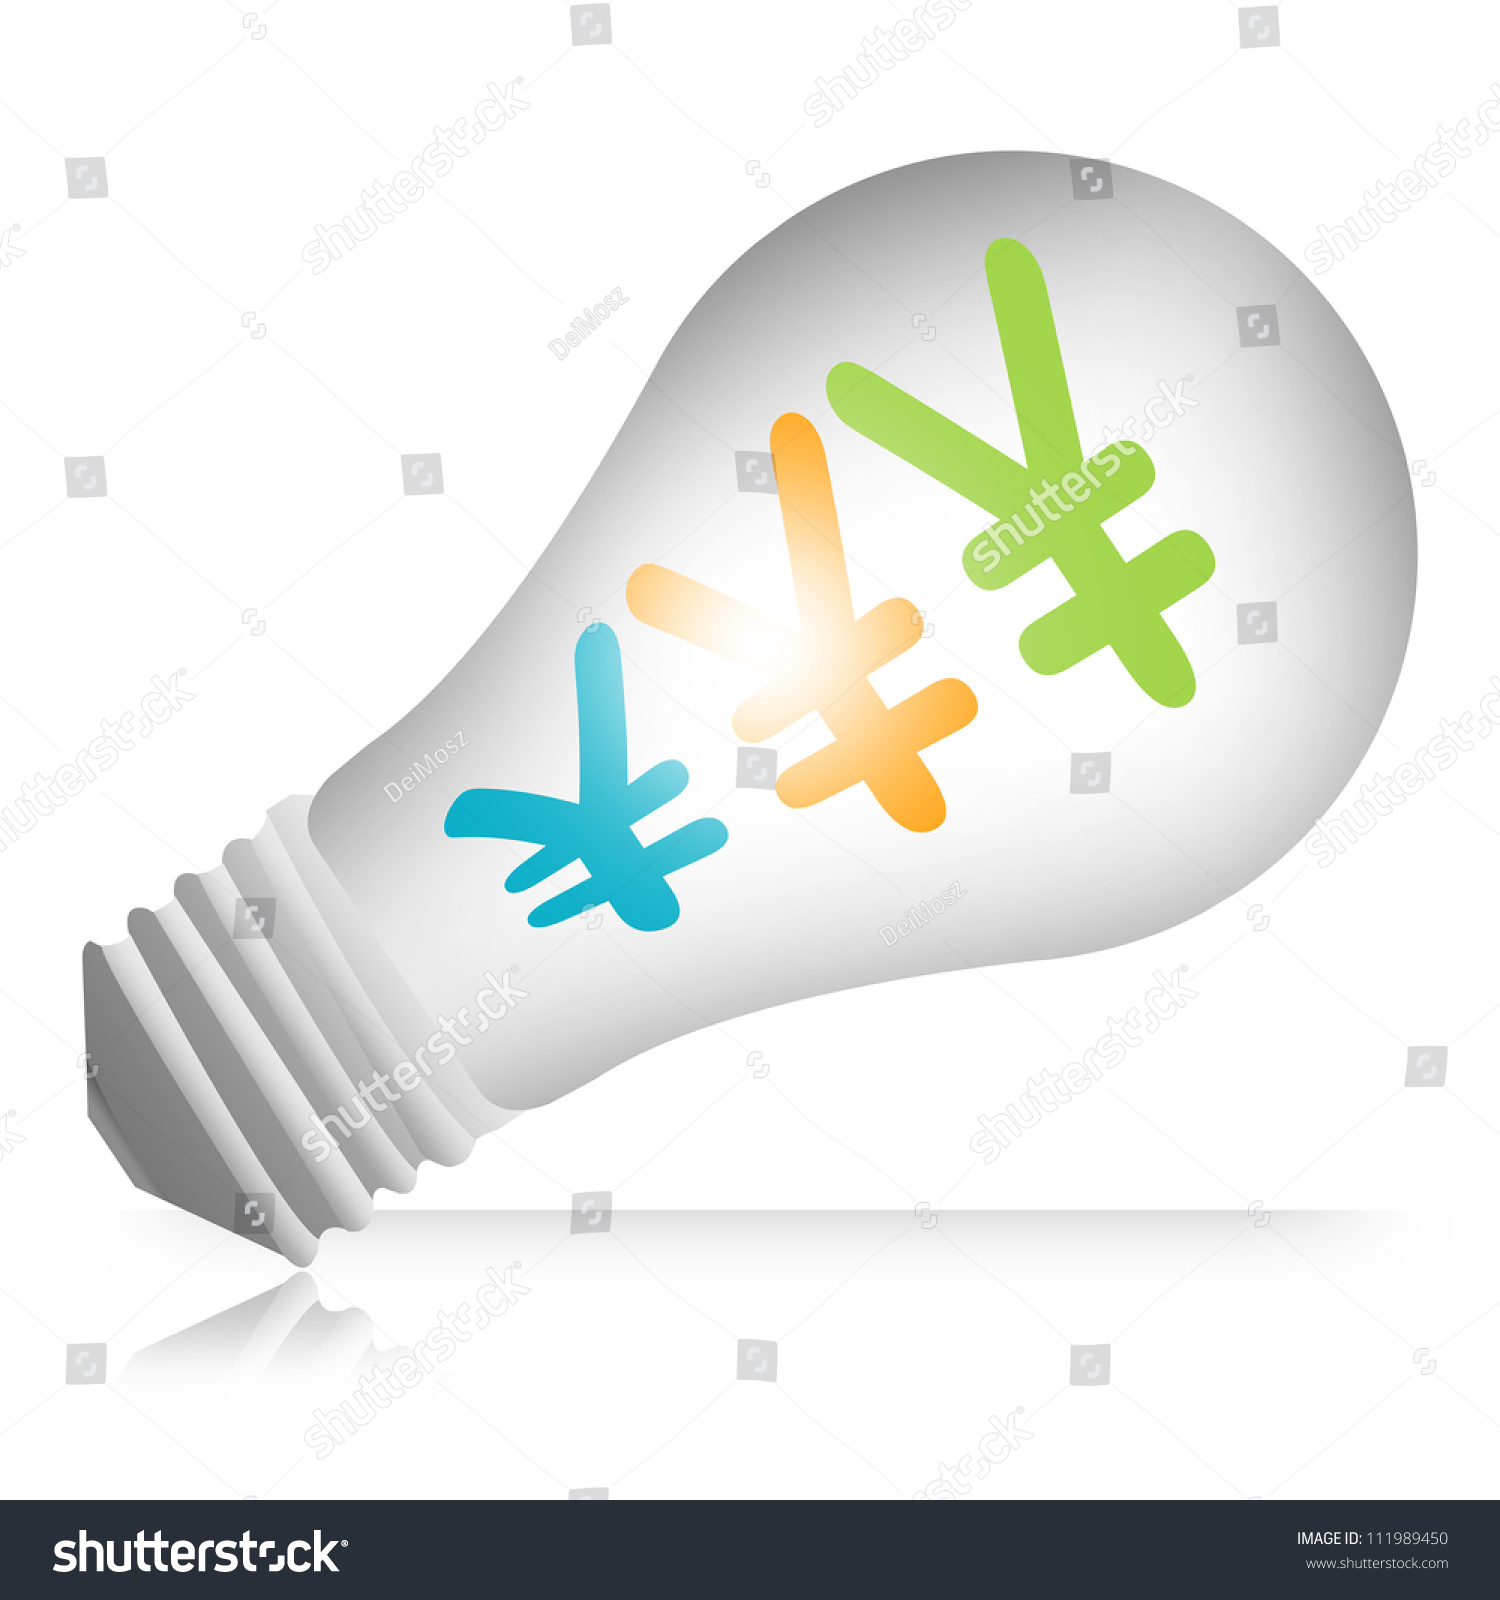 Japanese yen chinese yuan currency symbols stock illustration japanese yen or chinese yuan currency symbols in light bulb isolated on white background biocorpaavc